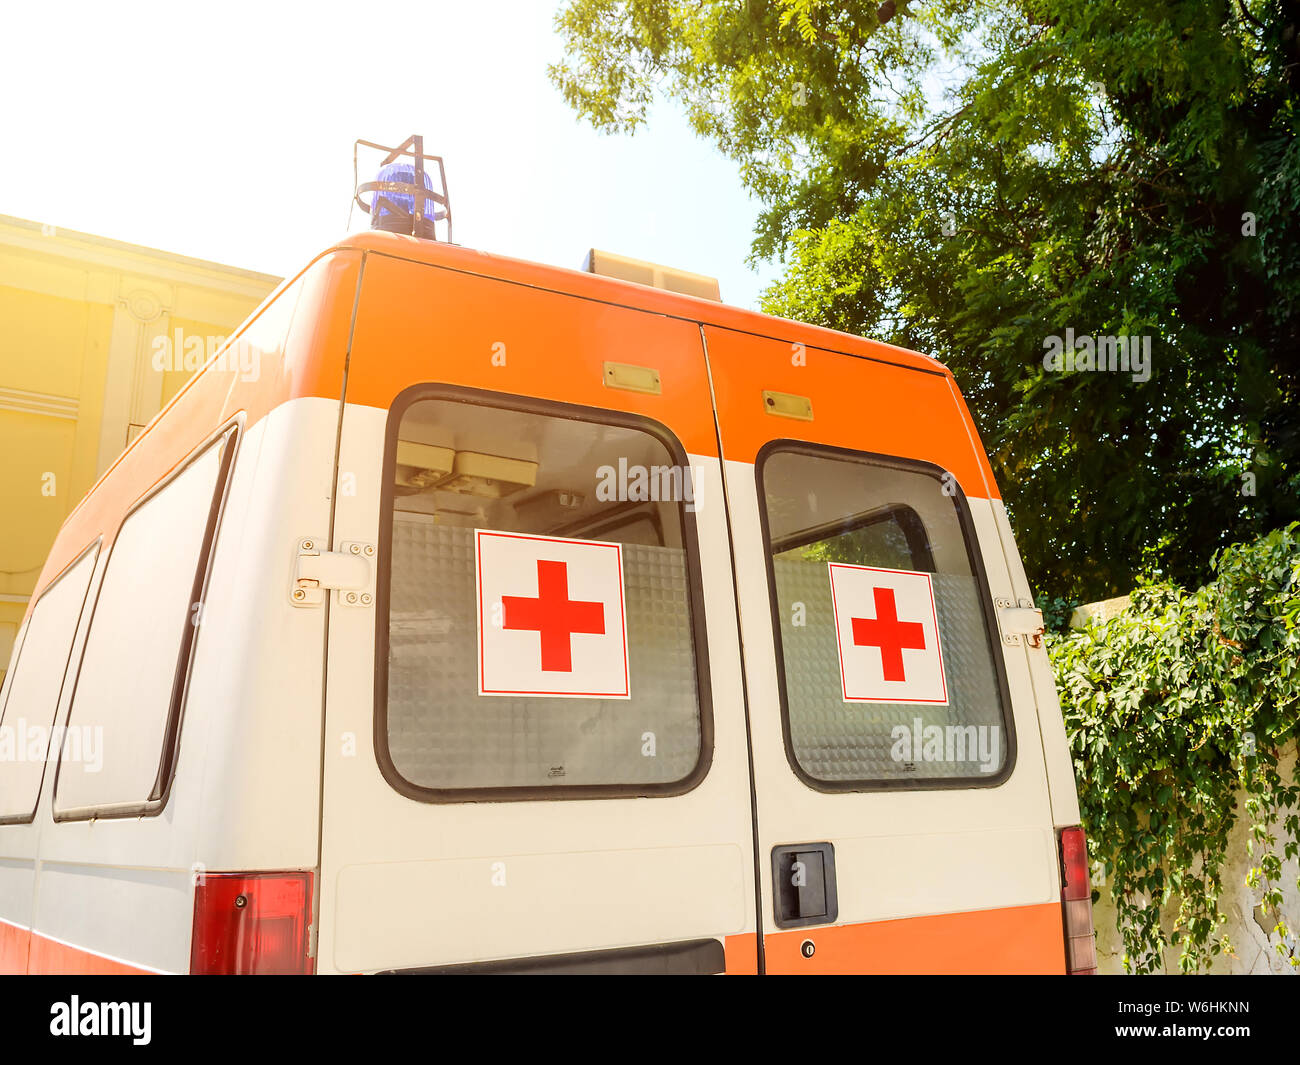 Varna, Bulgaria, July 22, 2019. Stationary white ambulance car with red cross on the windows on a sunny summer day. An emergency medical service van. Stock Photo